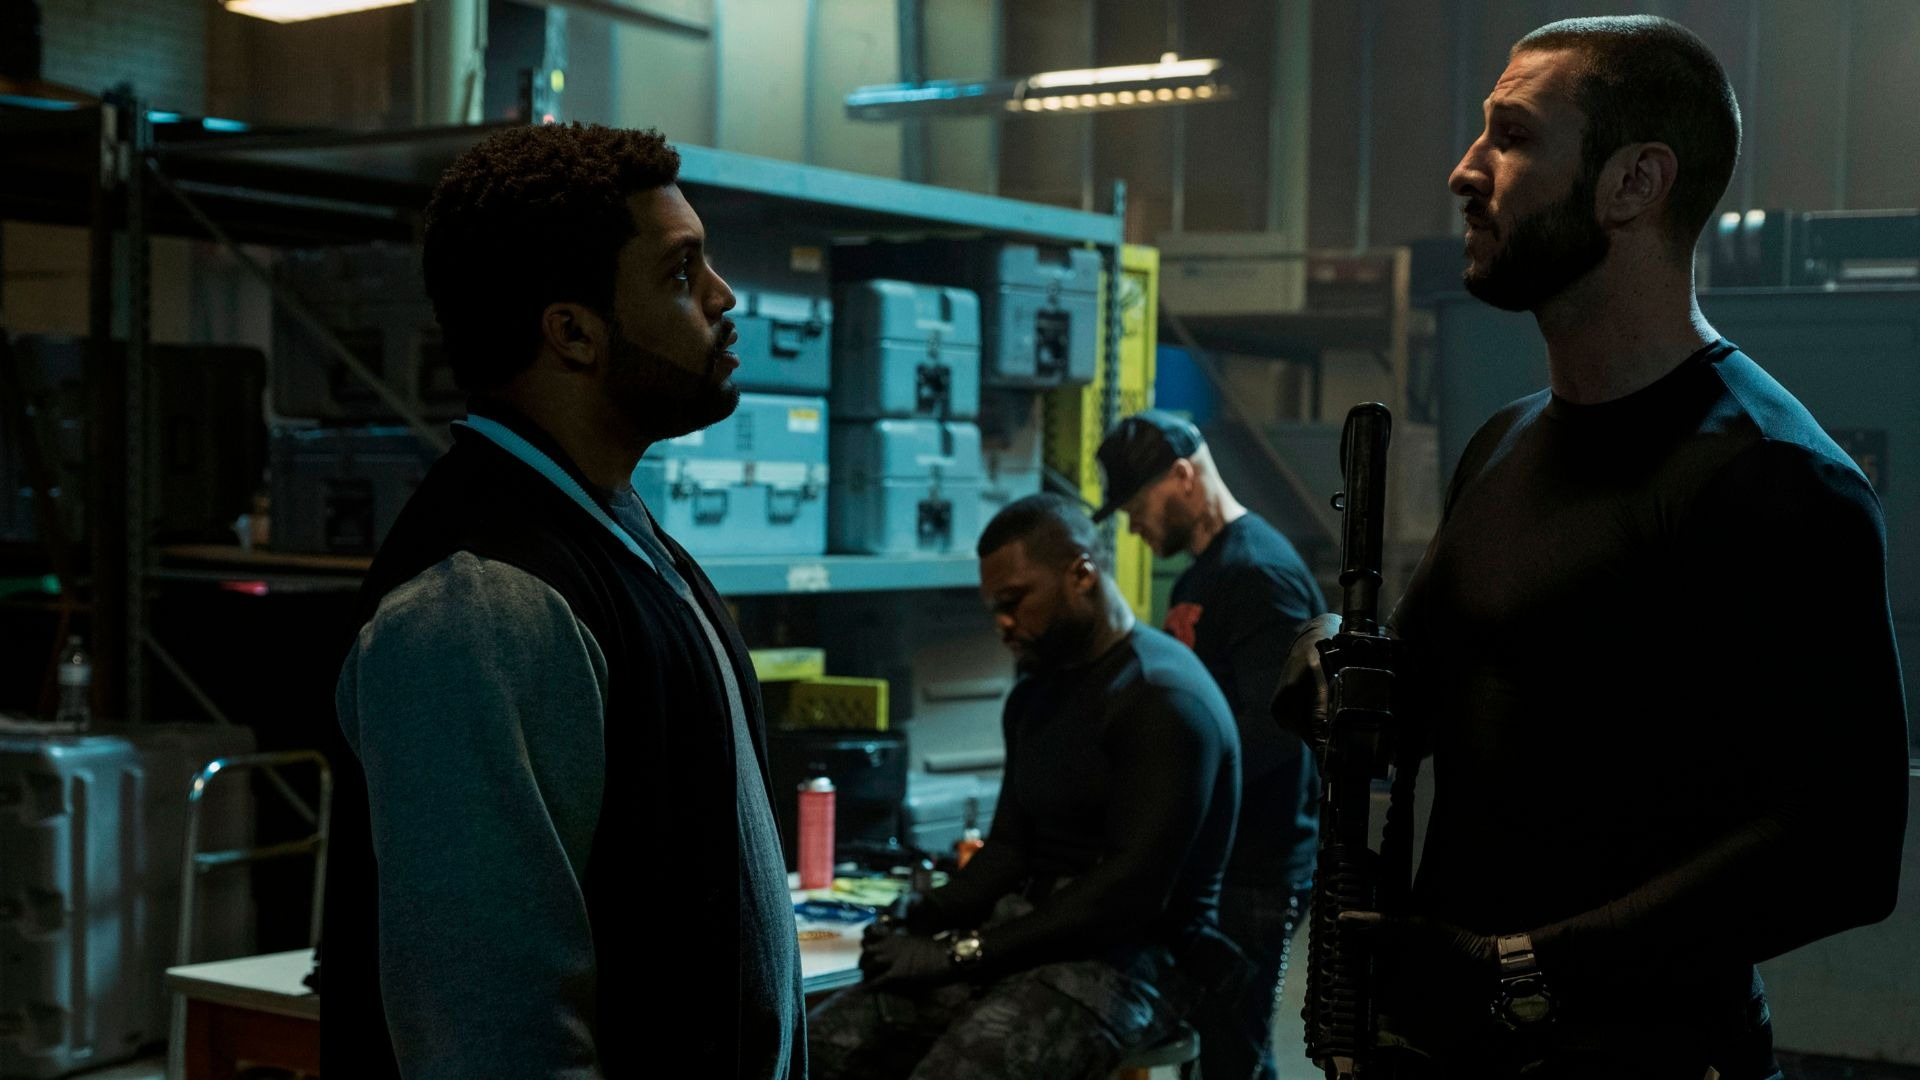 O'Shea Jackson Jr. and Pablo Schreiber in Den Of Thieves.